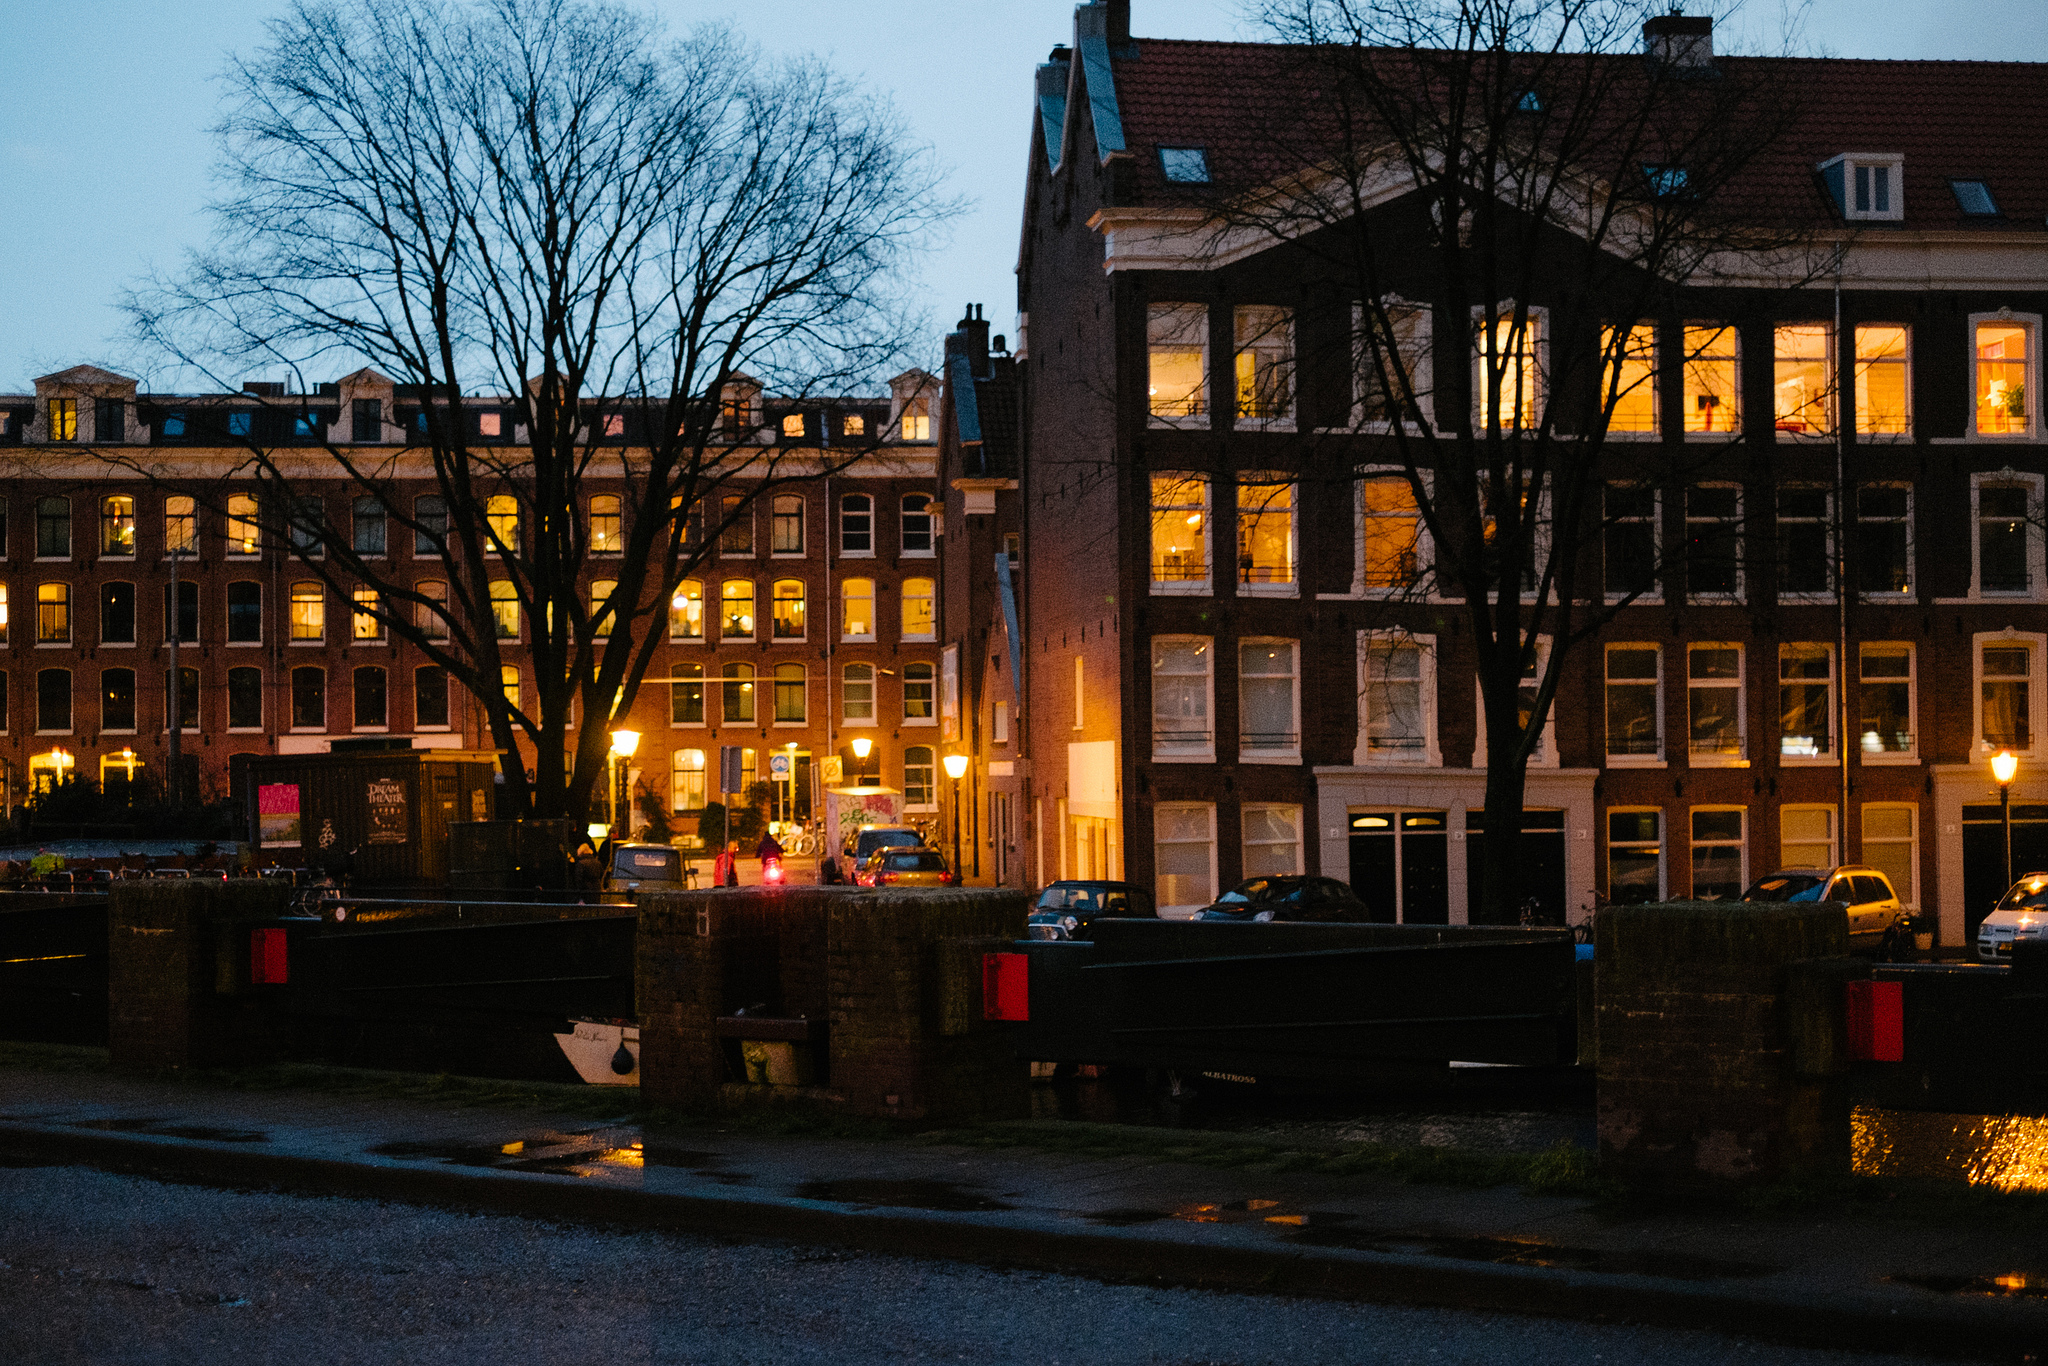 As we walked around and around on the damp December nights in Amsterdam, we saw light. Light installations lit up the canals, candles beckoned to us from fogged-up pub windows, and the glow from cozy apartments made us feel a little less chilly.